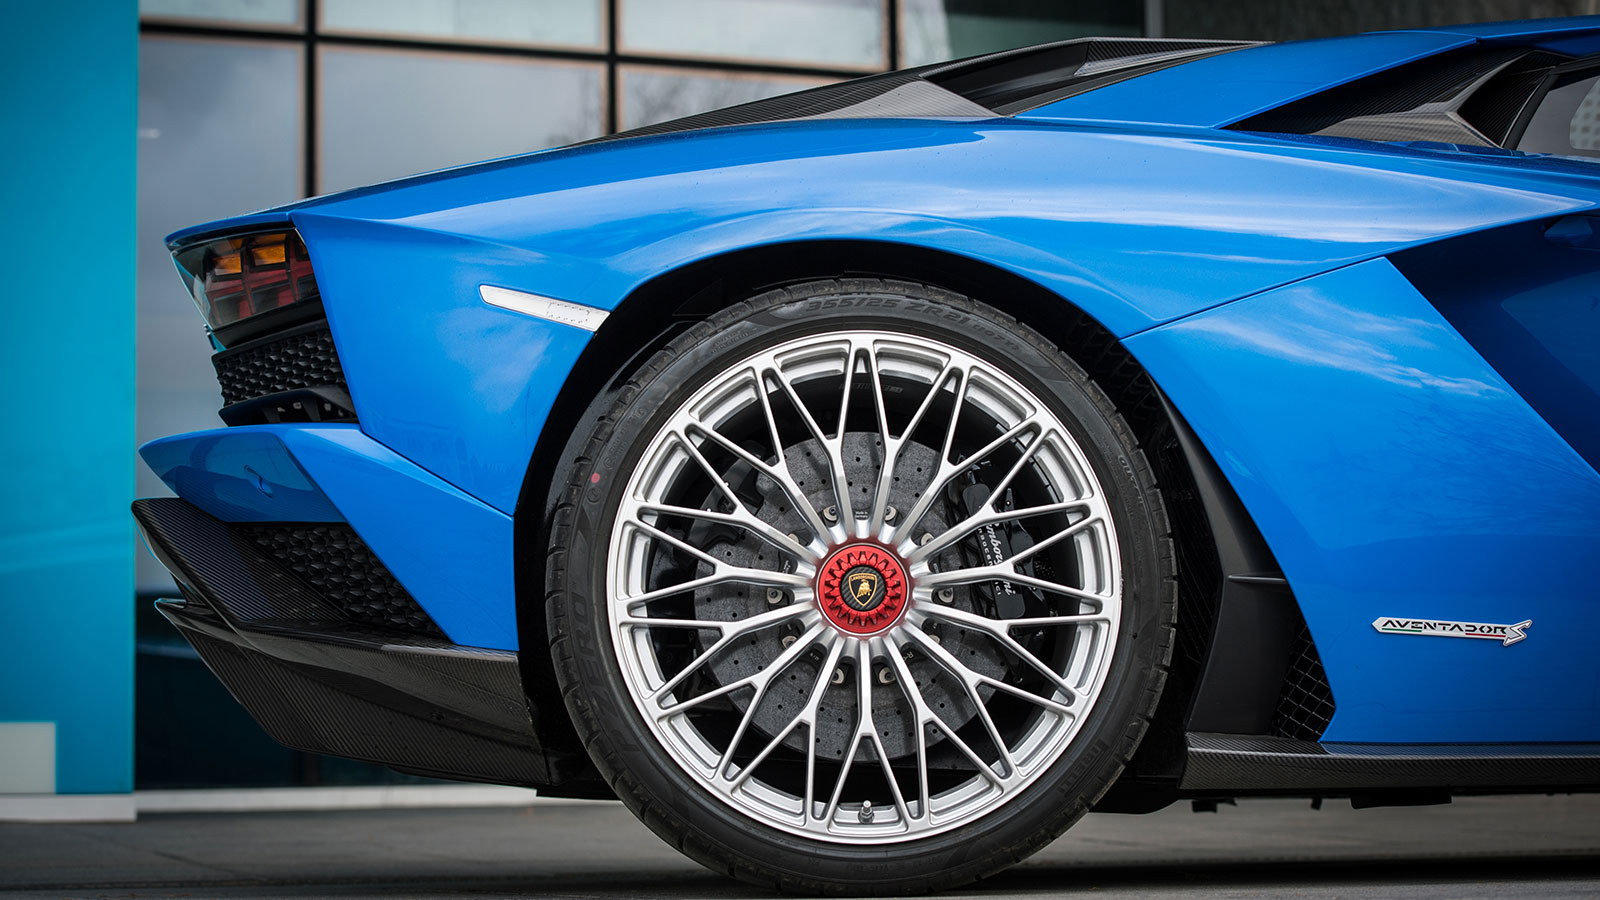 Lamborghini Aventador S Coupe - The Icon Reborn image 28